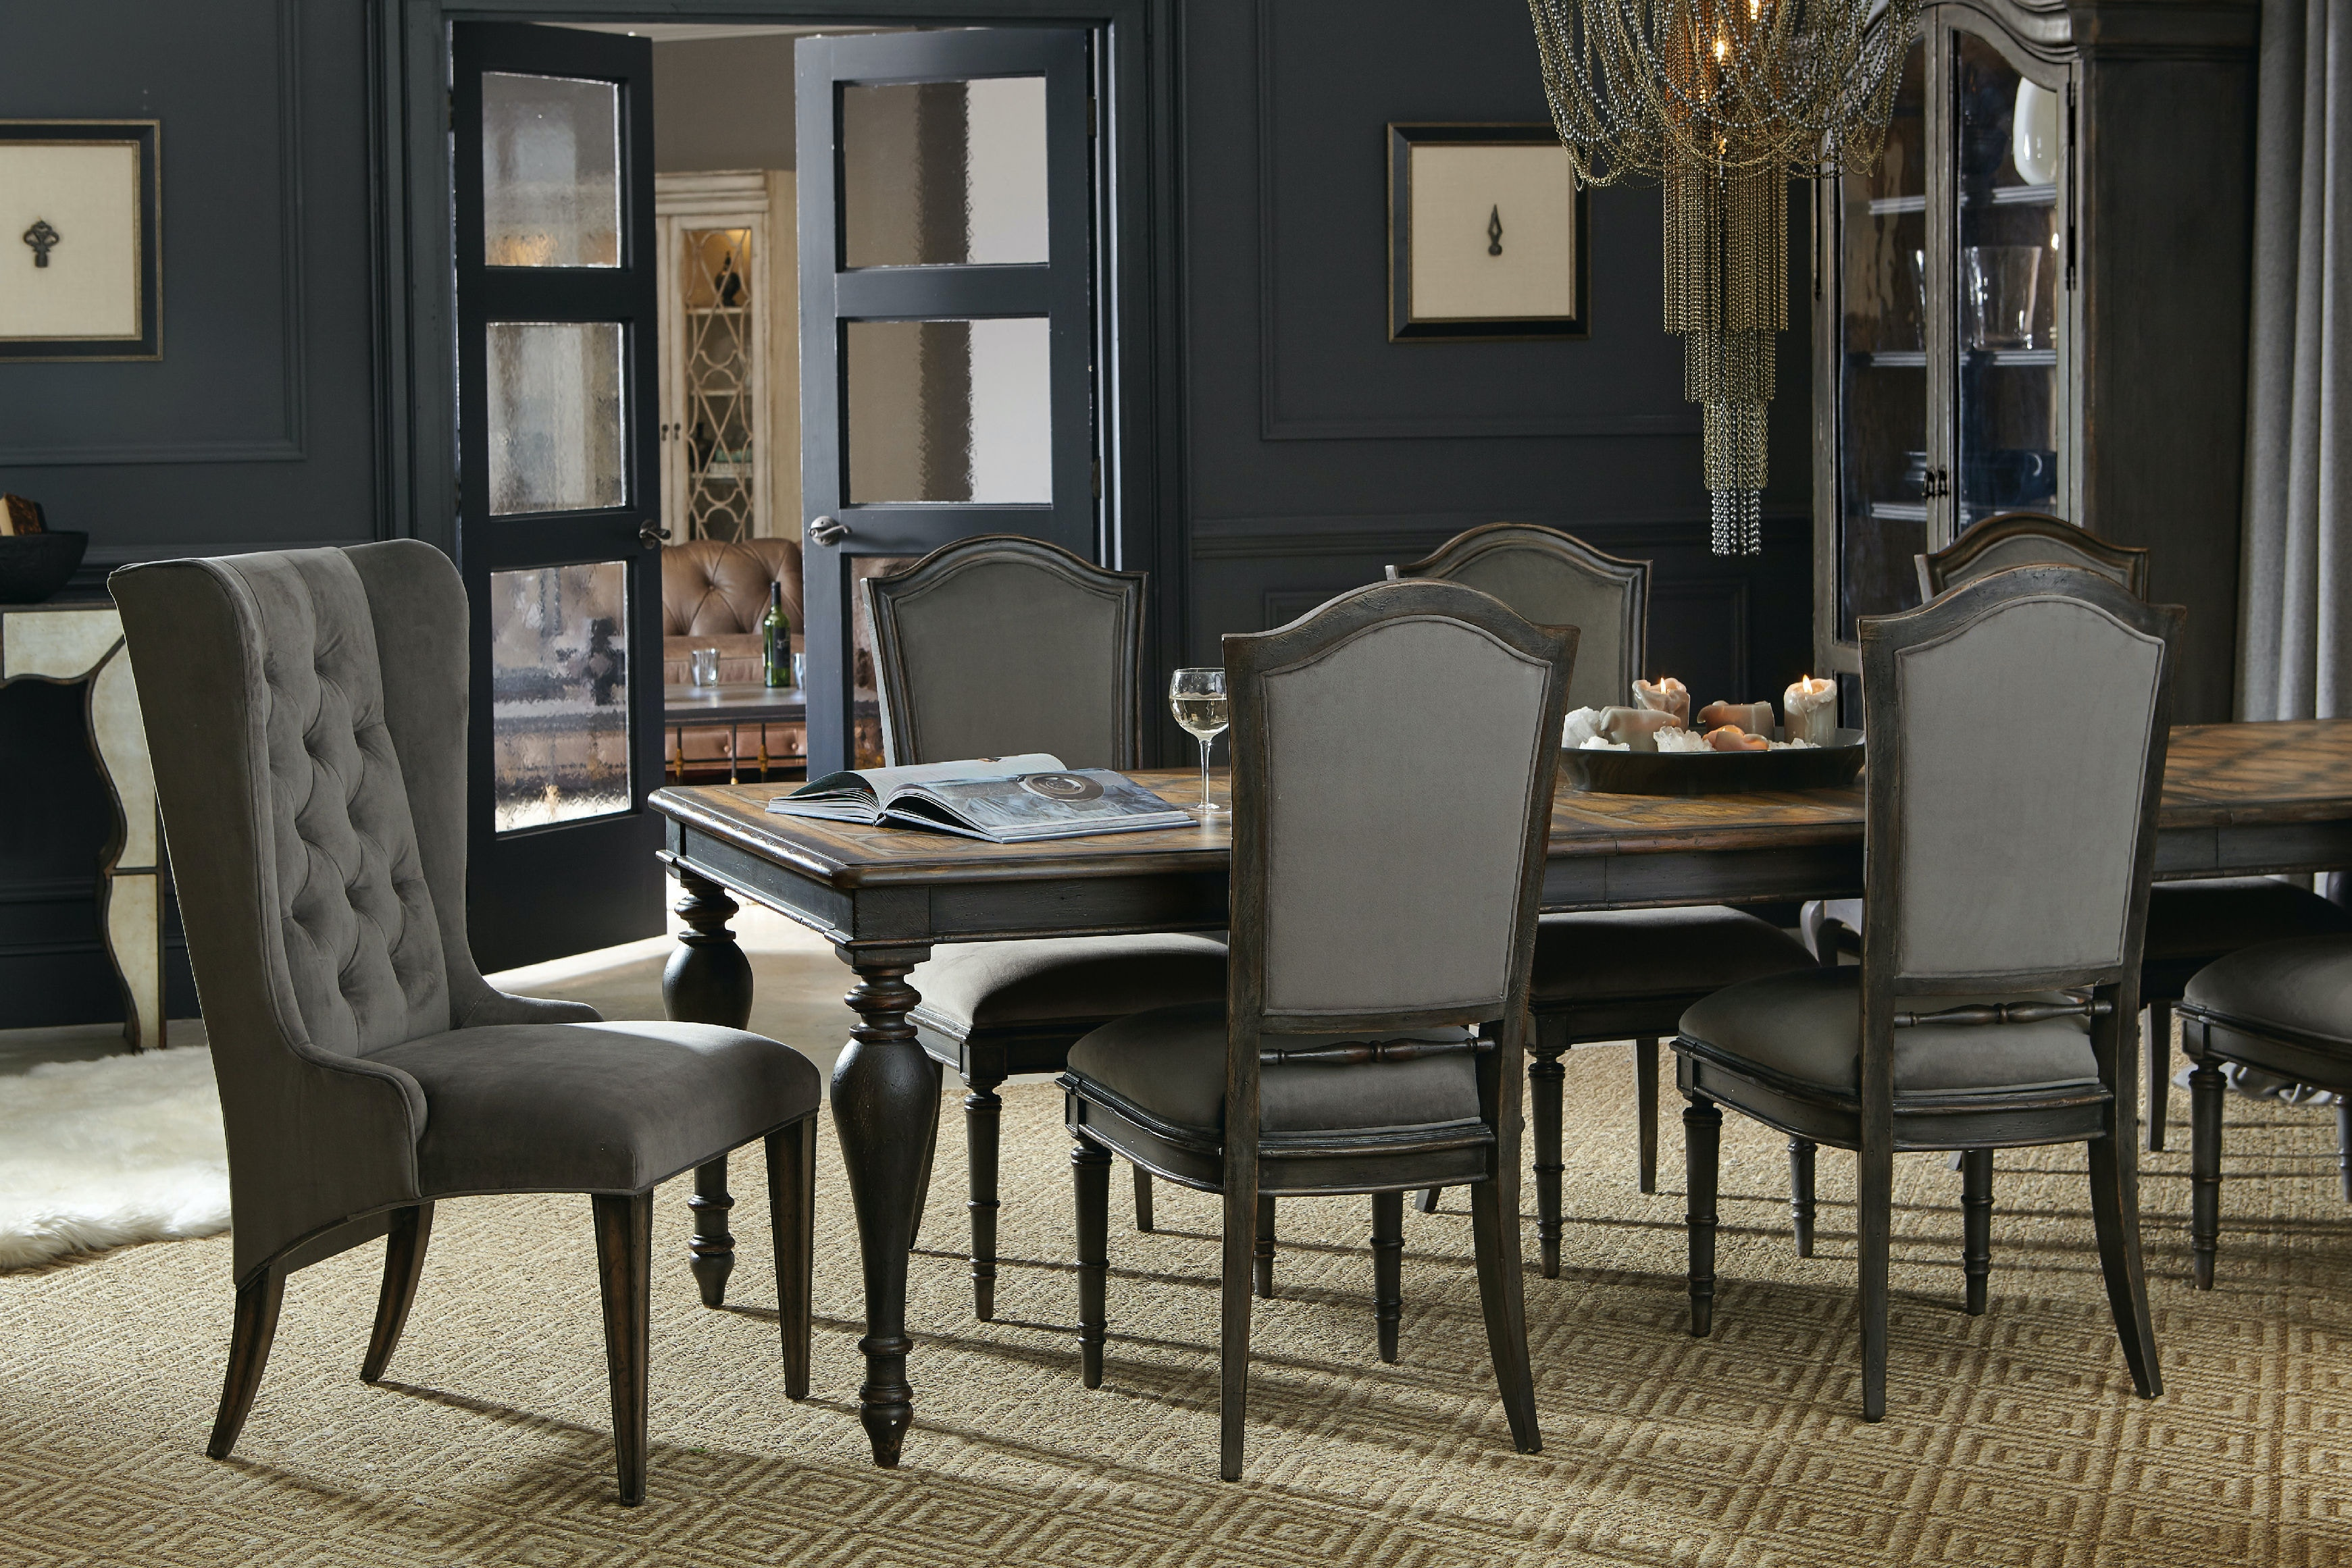 hooker furniture dining room arabella rectangle leg table w 2 20 in leaves 1610 75207 multi. Black Bedroom Furniture Sets. Home Design Ideas